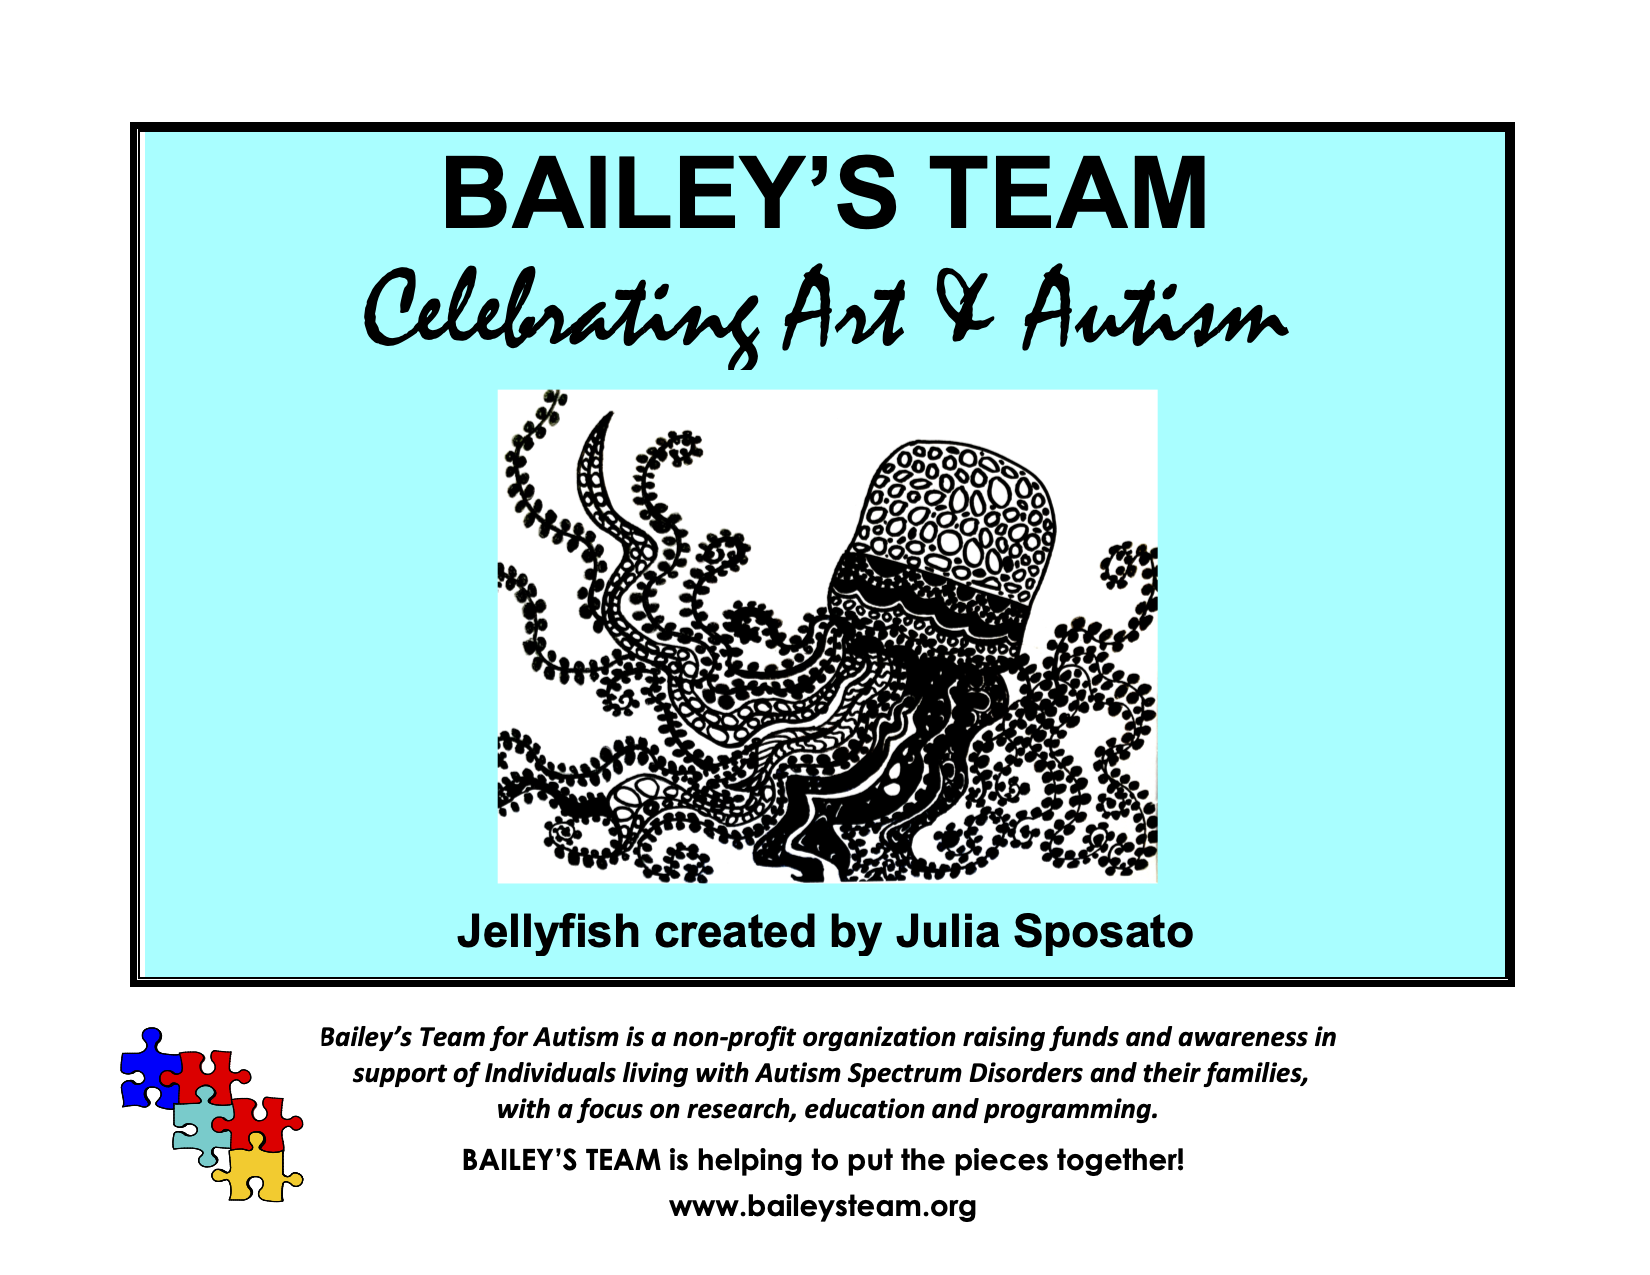 Buy our beautiful 2021 Calendar and support individuals living with autism and their families! image